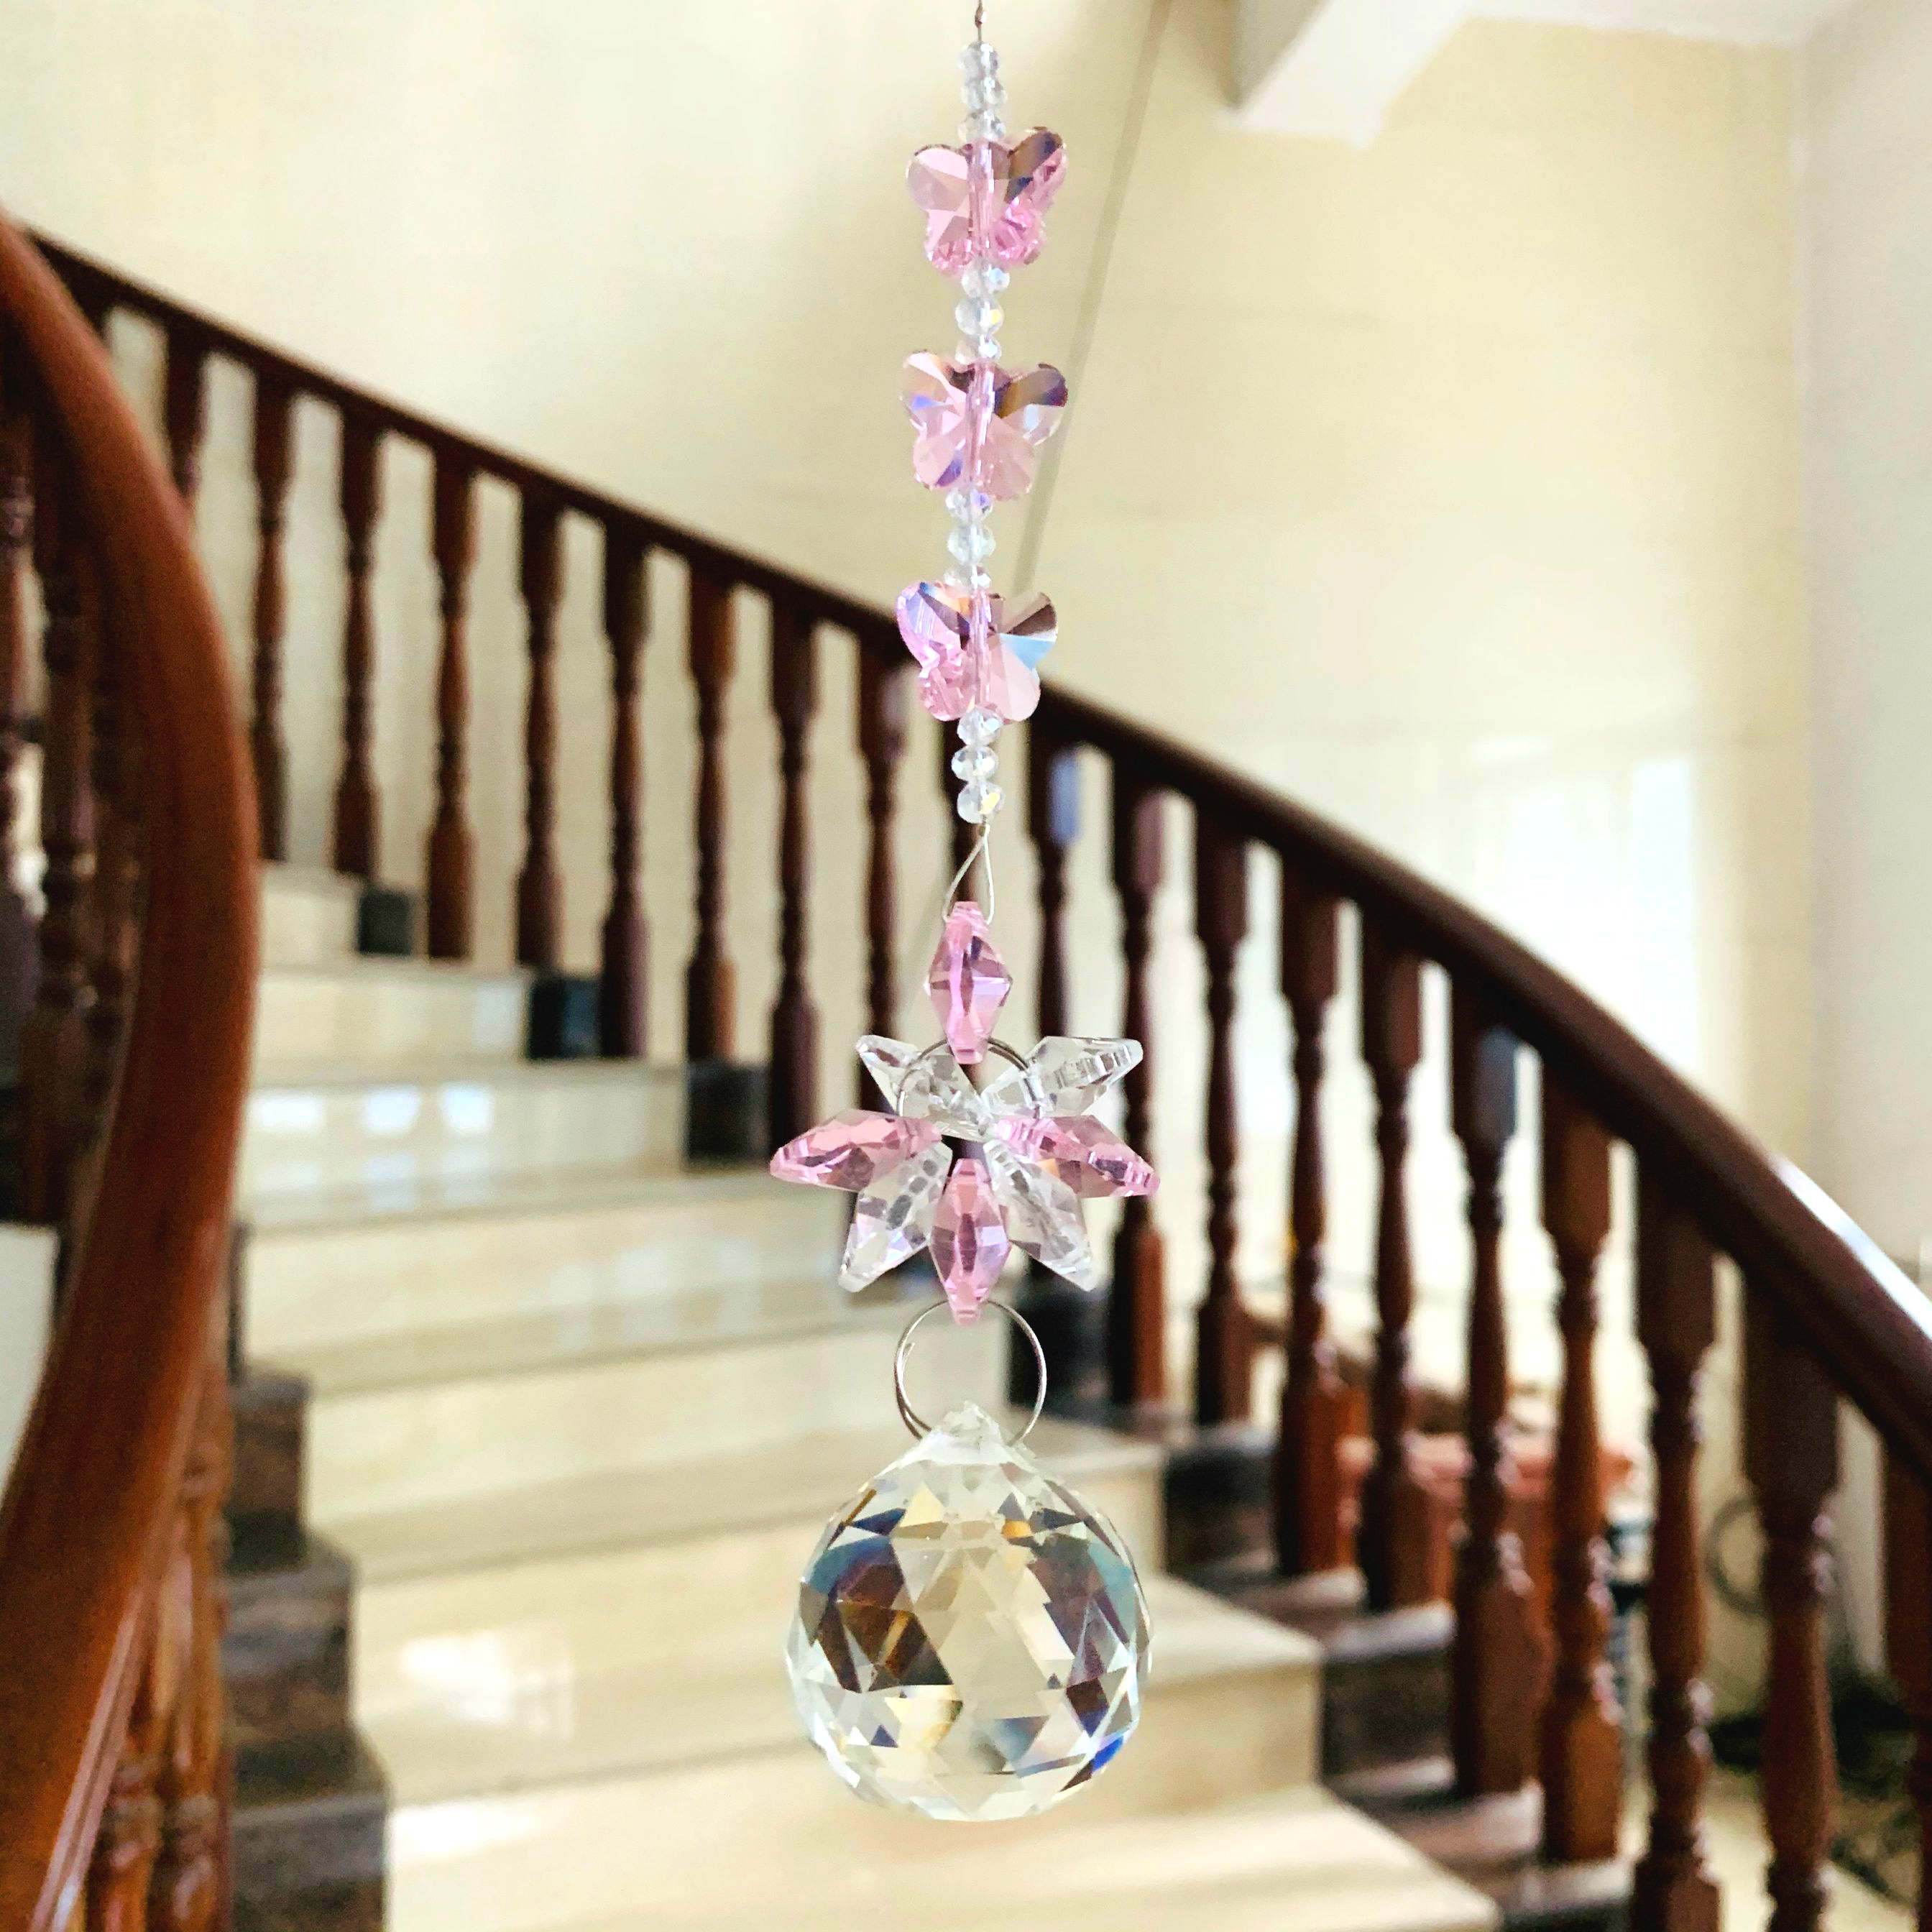 Garland Pink Crystal Diy Chandelier Crystals Glass Suncatcher Crystal Prisms Pendant For Home Decor Christmas Tree Hanging Drops Chandelier Crystal Aliexpress